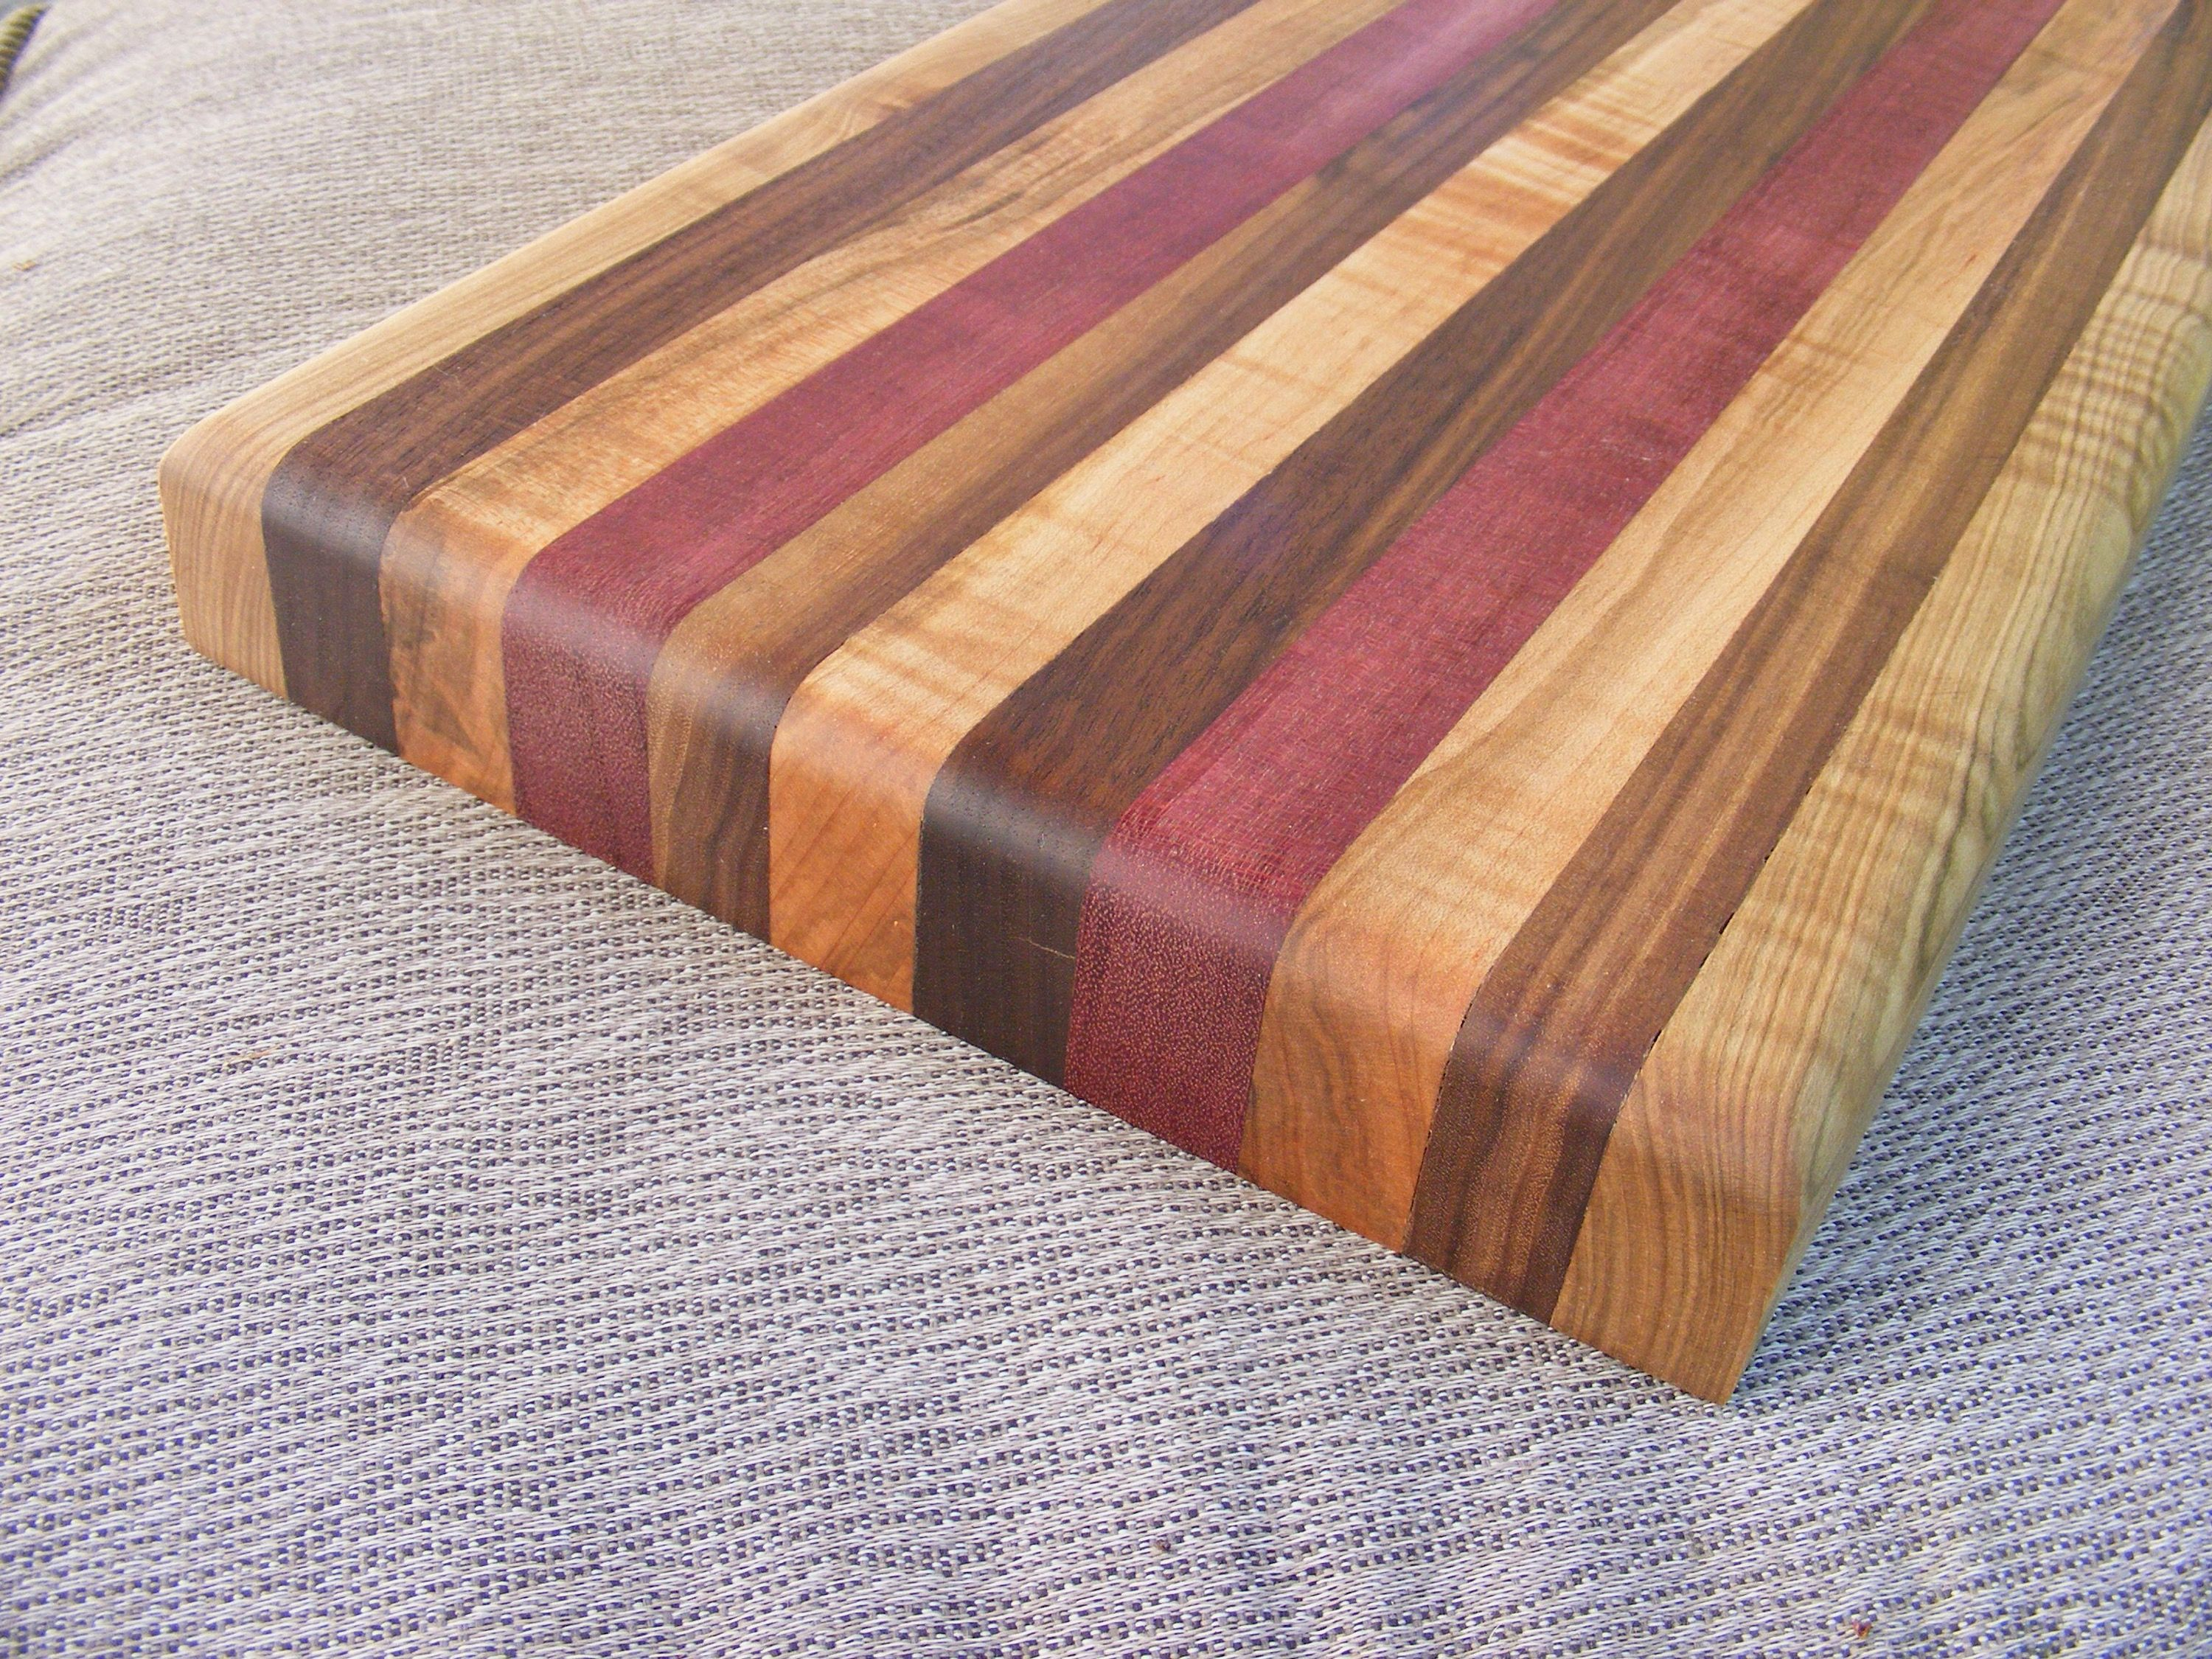 how to make your first wooden cutting board | around the